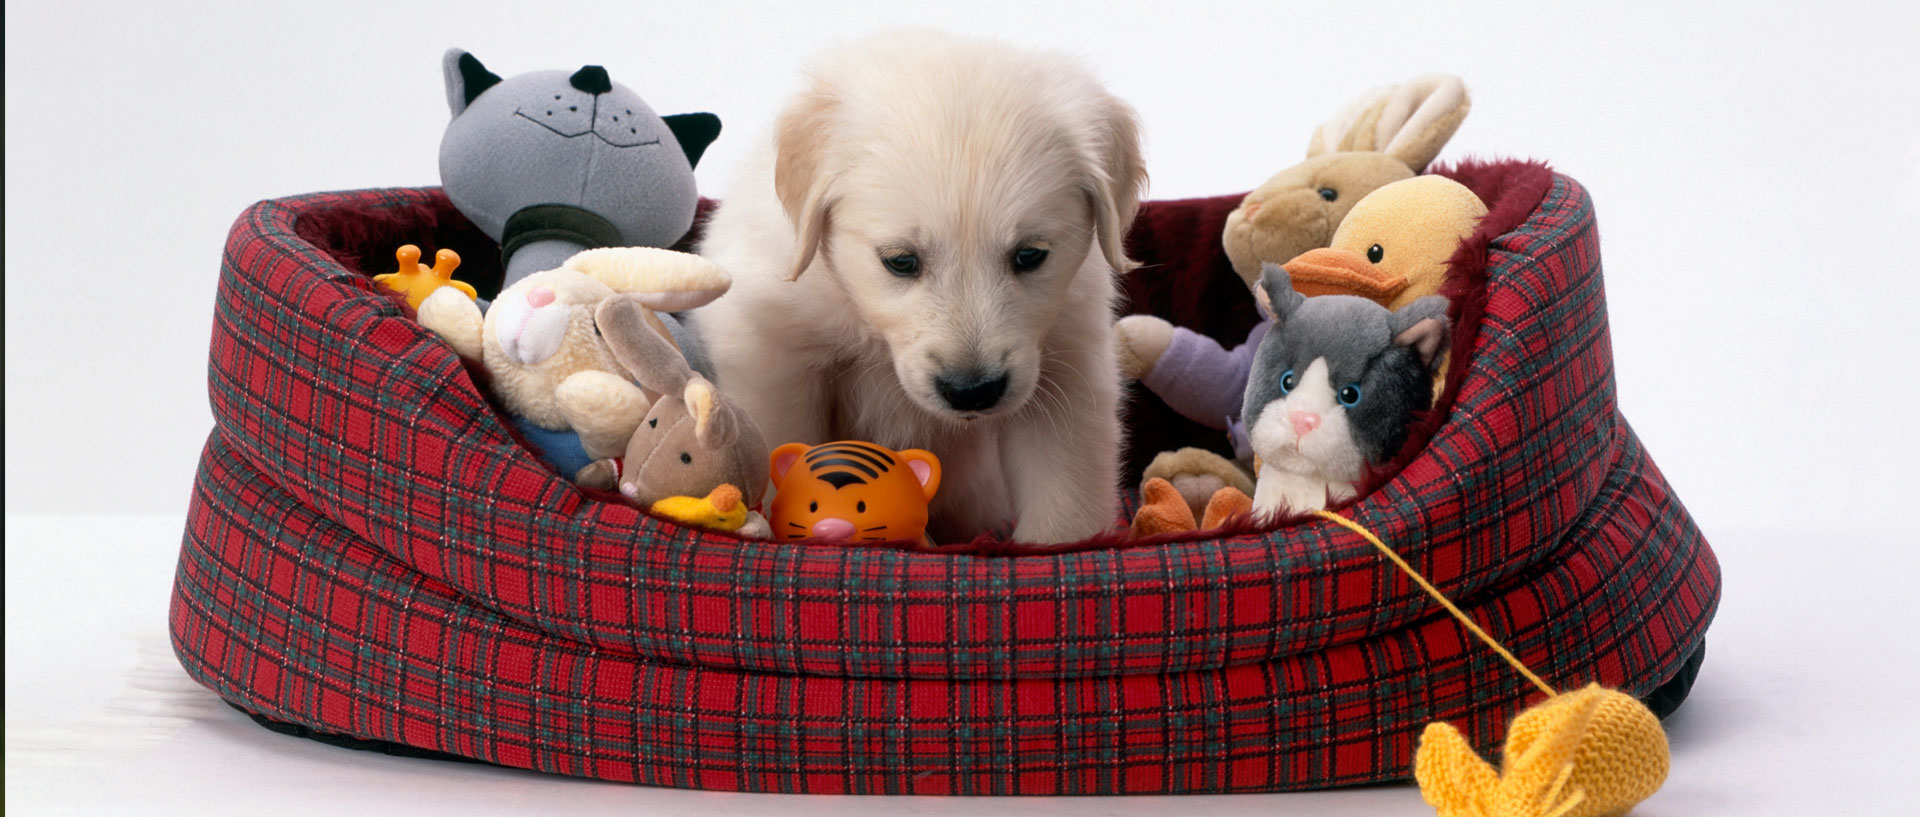 Best Dog Toys : How to pick the best toys for your dog consumer reports